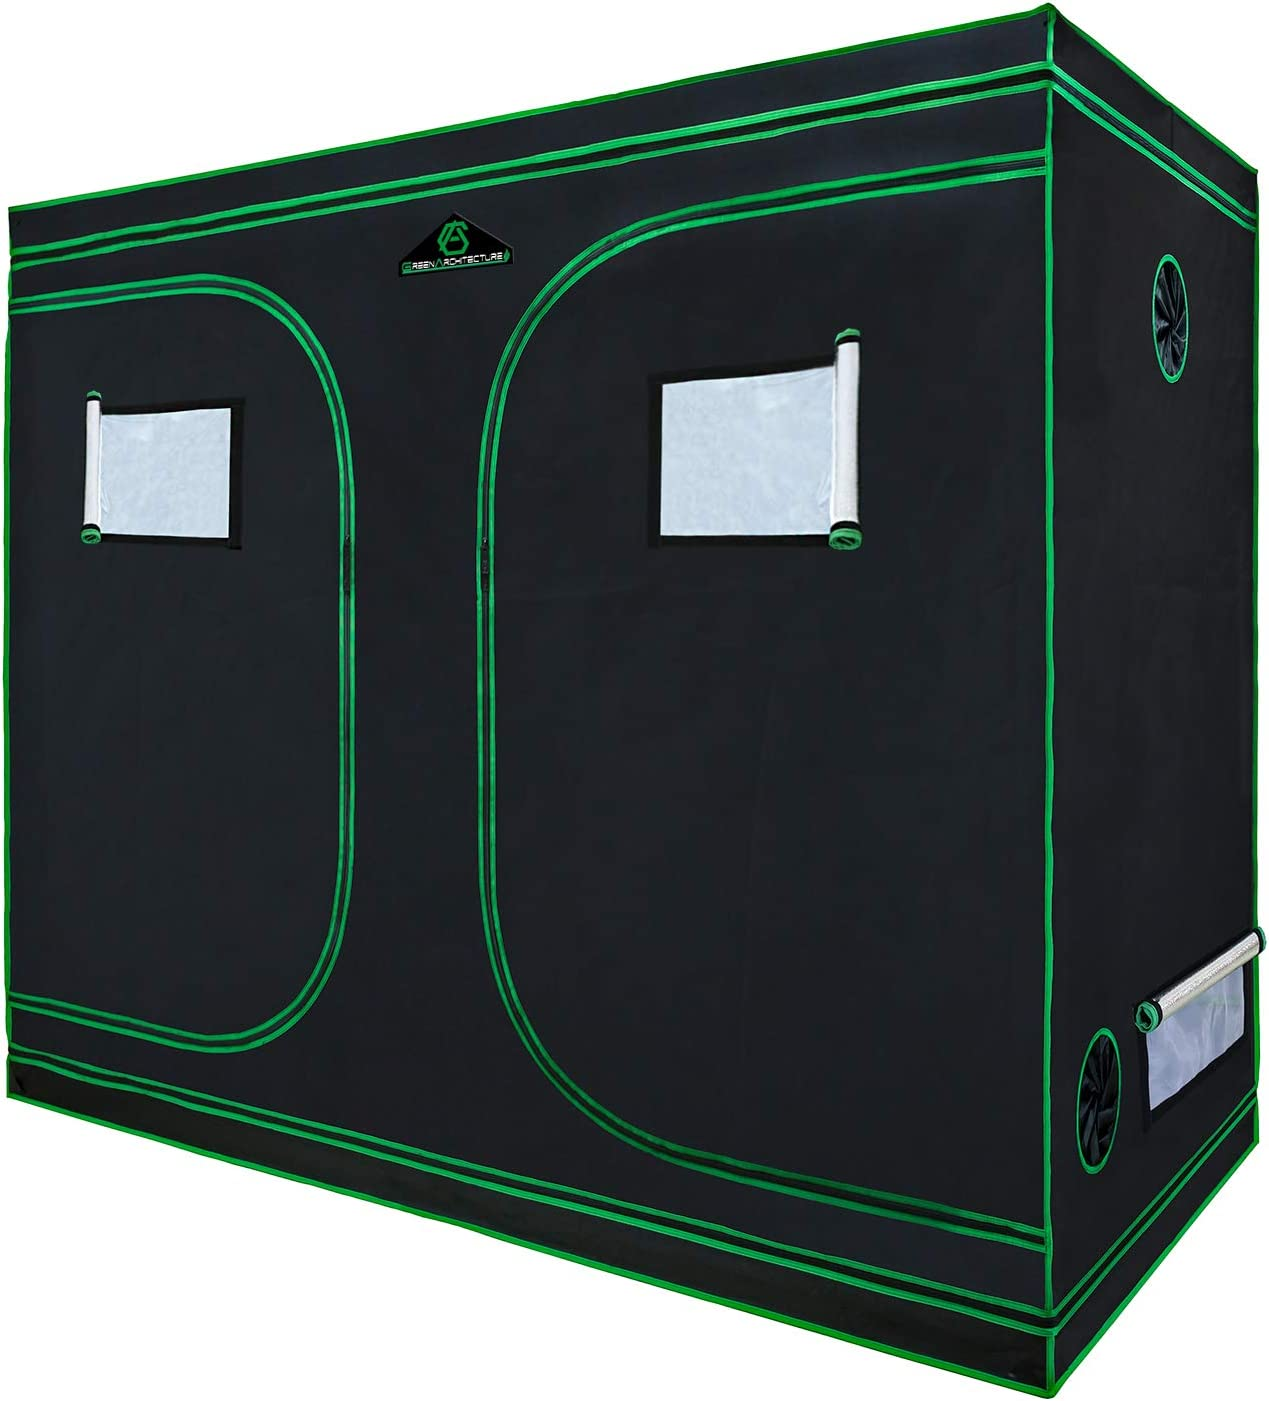 GA Grow Tent,94x48x80 Reflective Mylar Hydroponic Grow Tent with Observation Window and Waterproof Floor Tray for Indoor Plant Growing.4×8 for 8 Plants